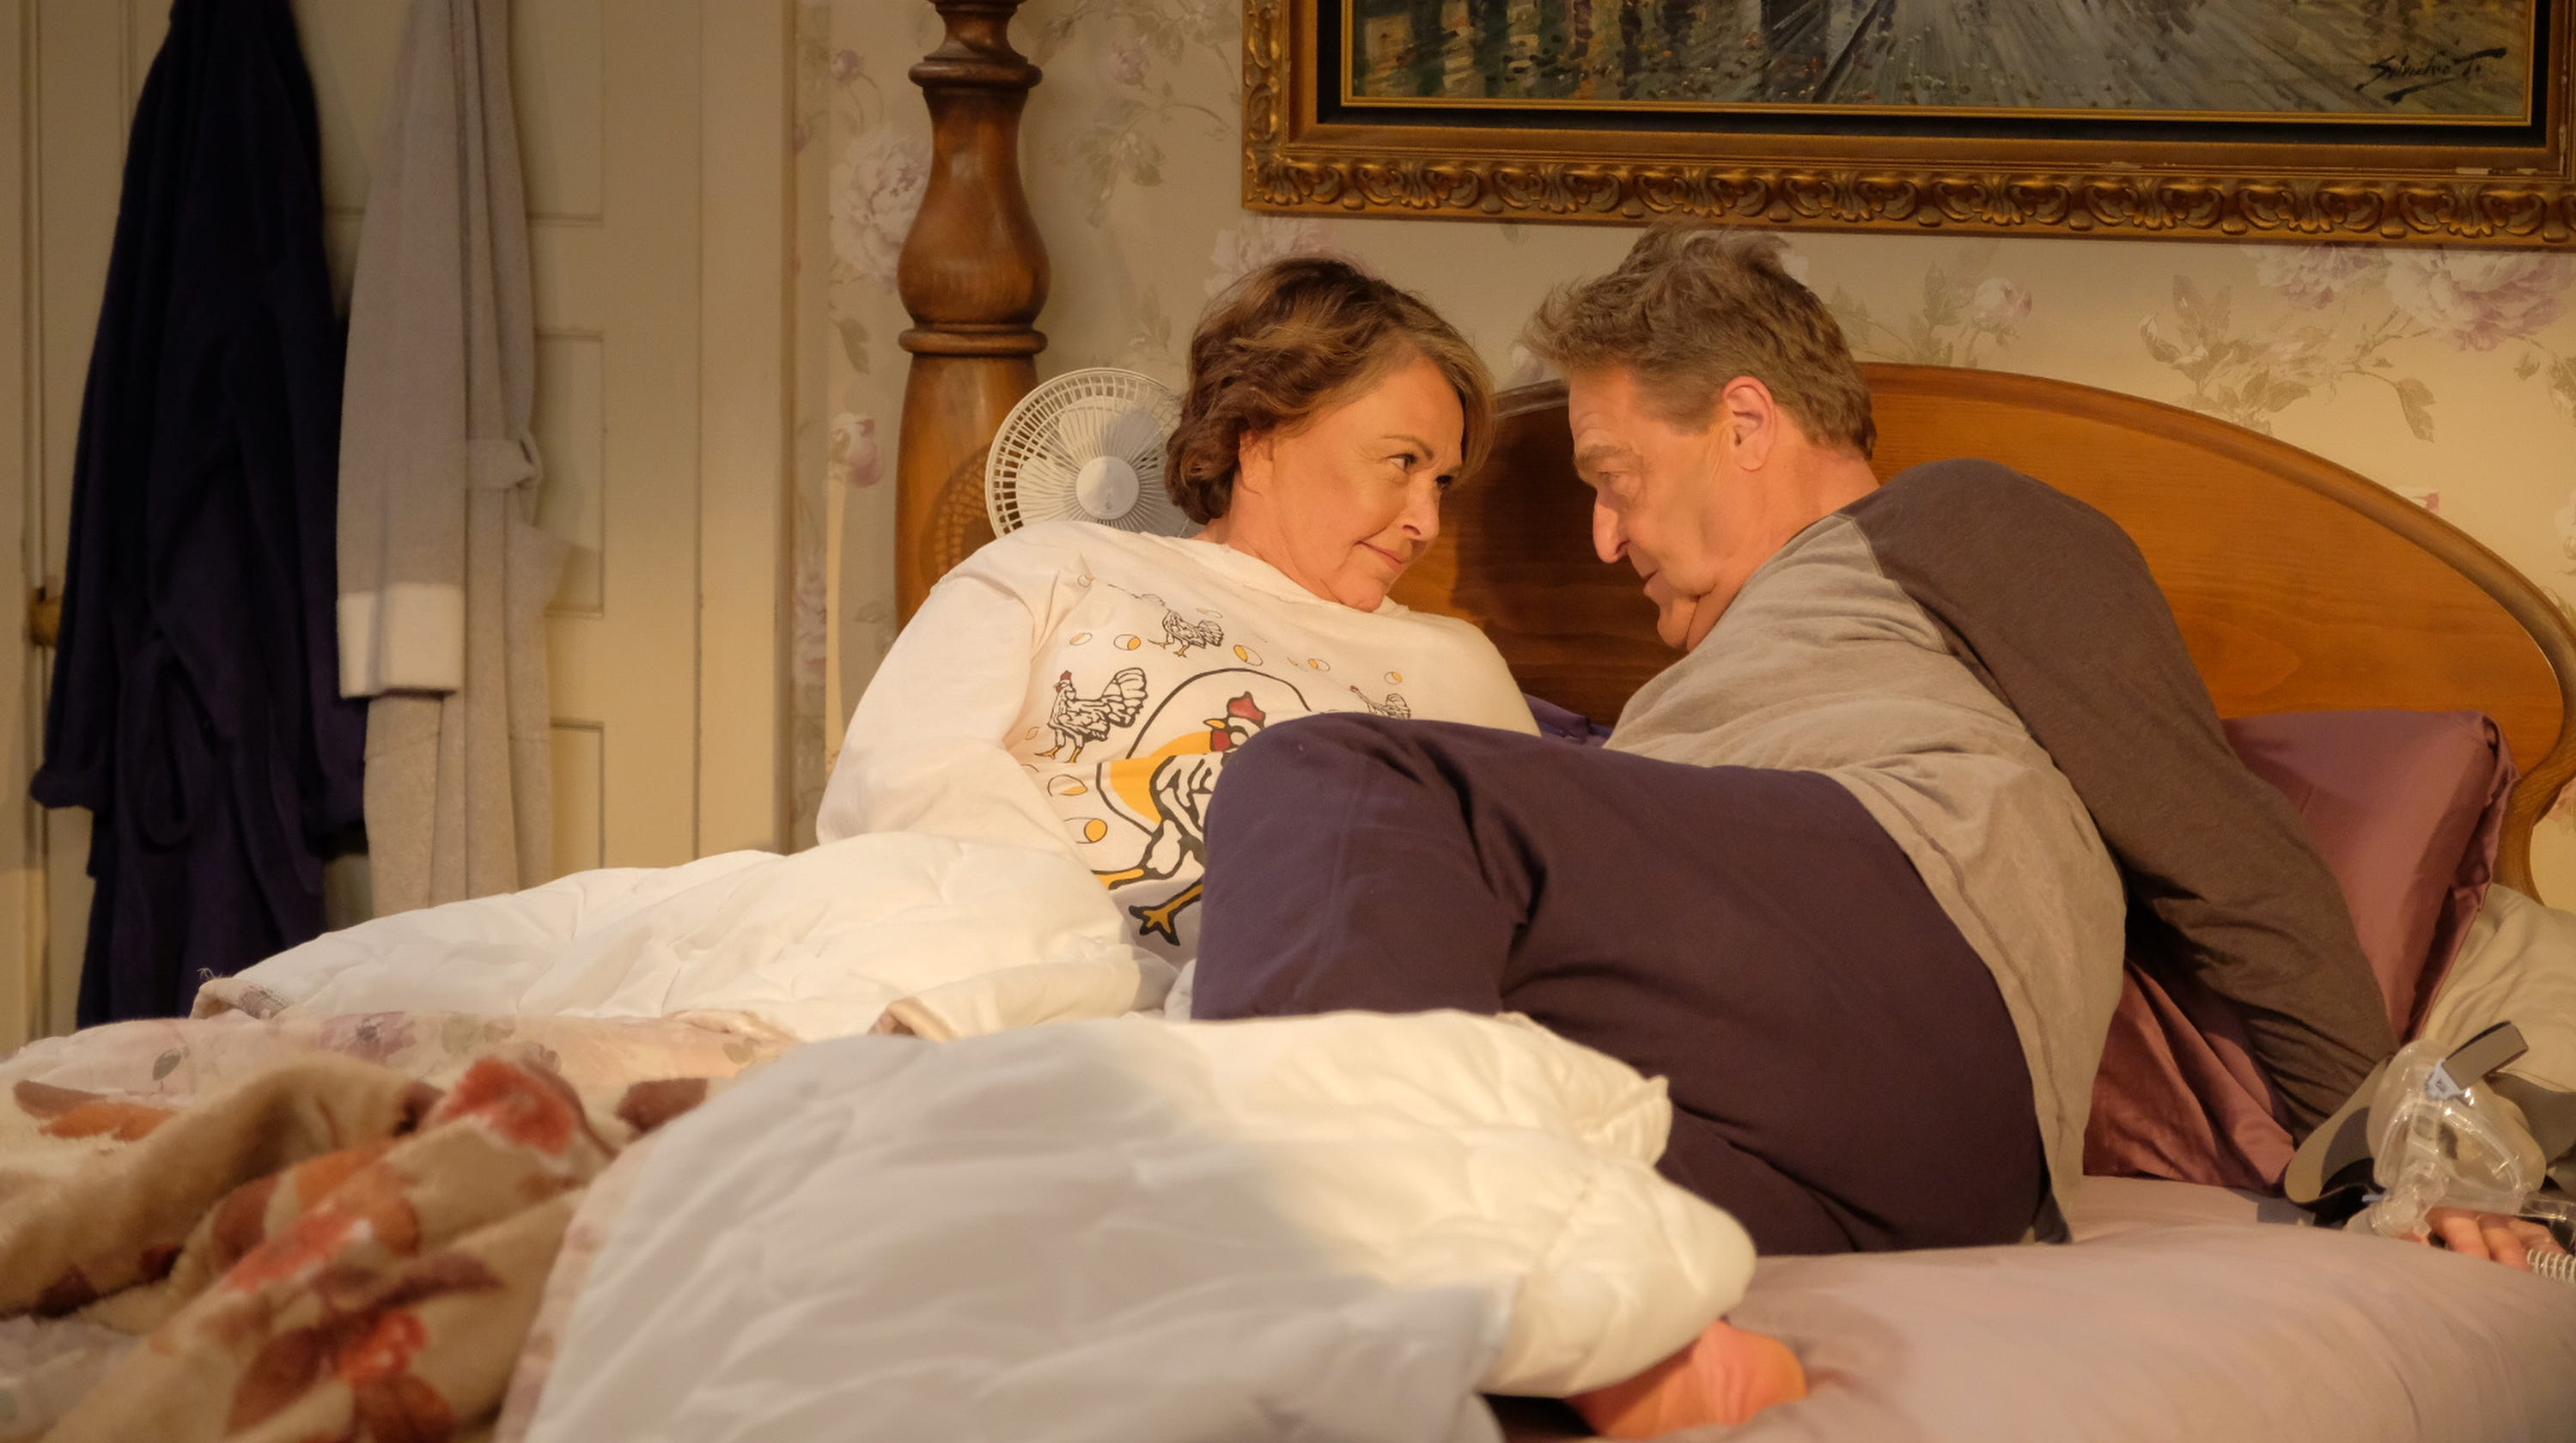 Fans learned the fate of Roseanne Conner (Roseanne Barr), left, seen with husband Dan (John Goodman) in last season's 'Roseanne' revival, in Tuesday's premiere of ABC's 'The Conners.'